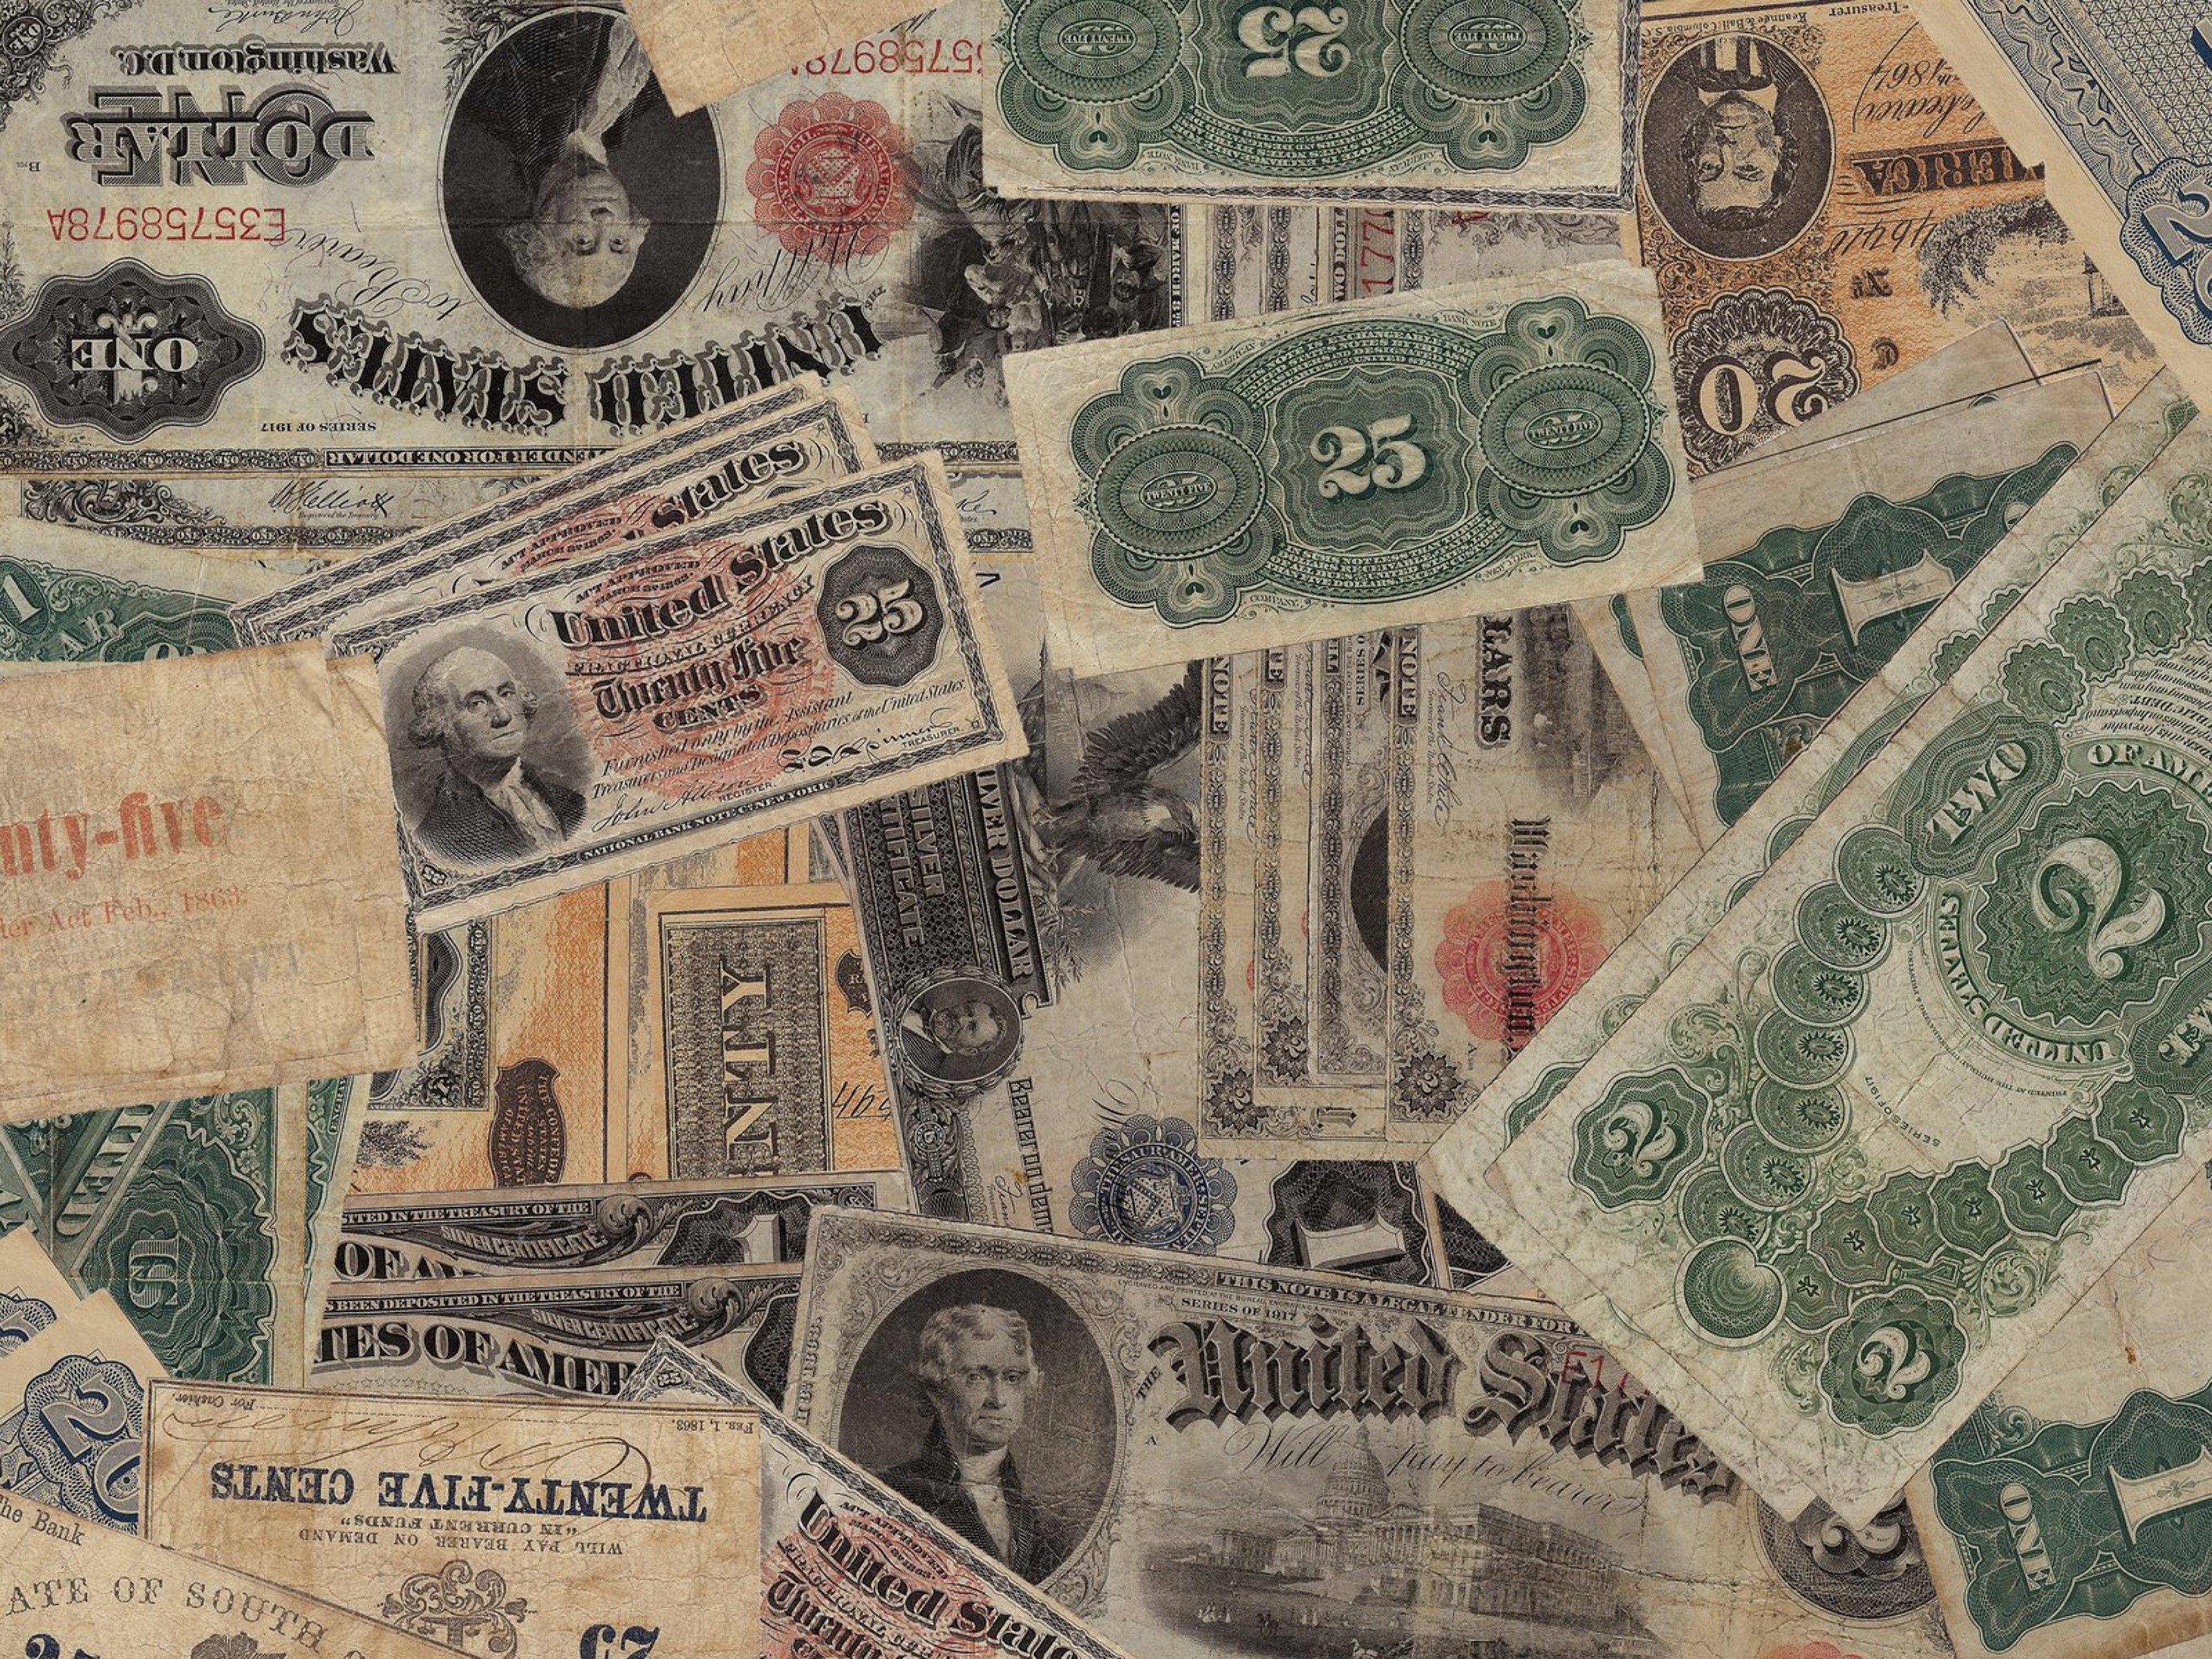 Pictures of money awesome pics of money old american currency notes